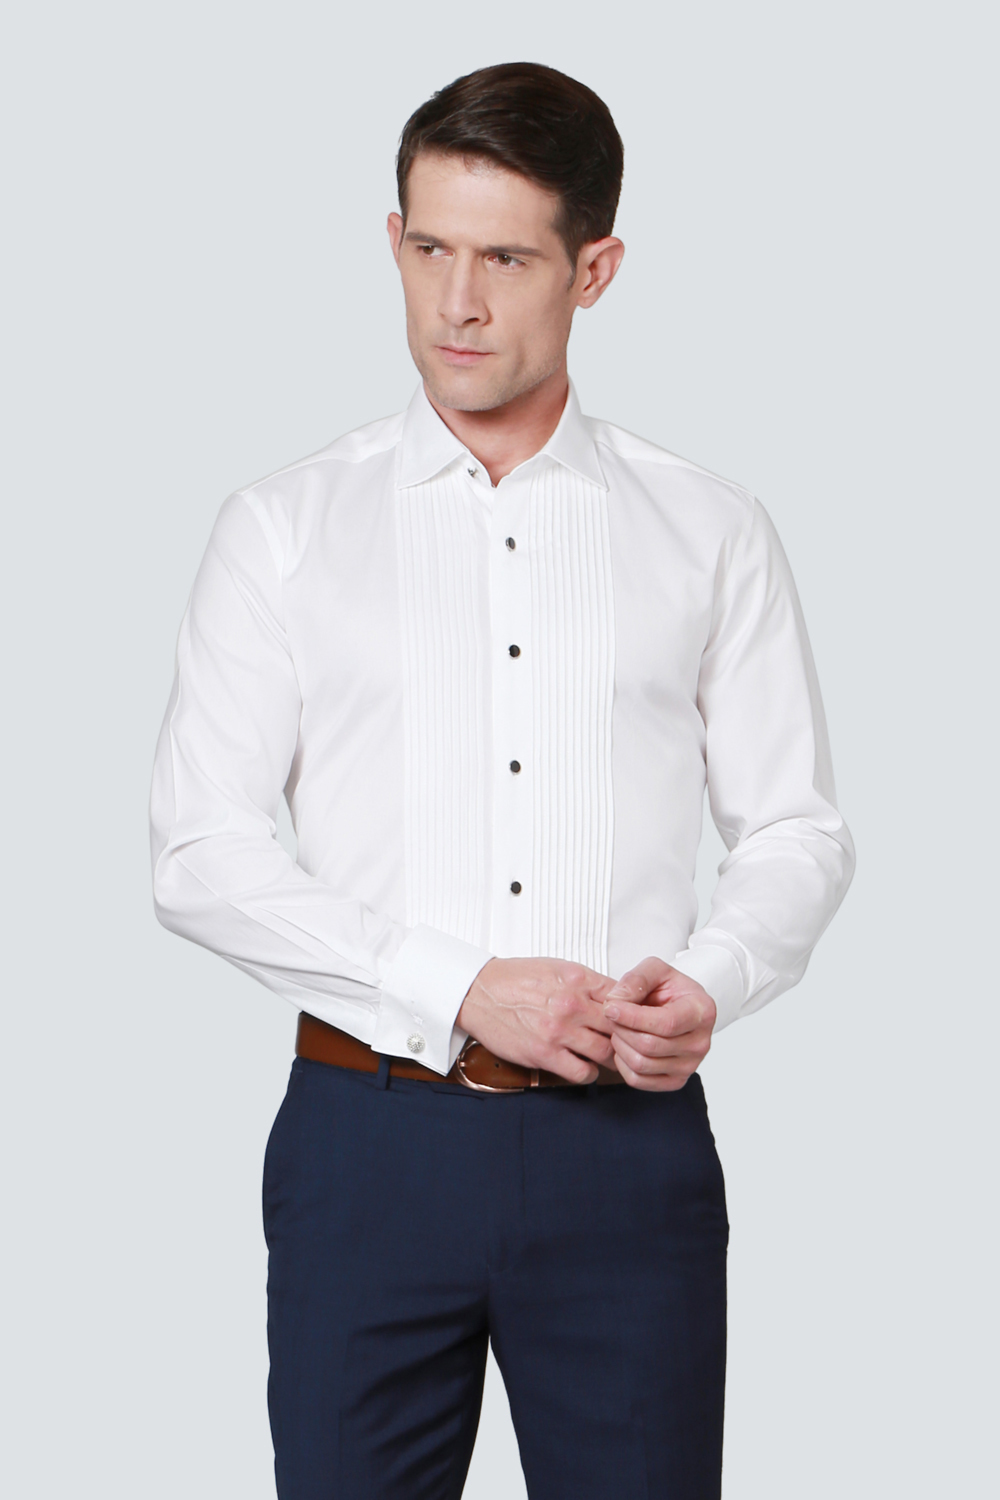 63262f7201 Louis Philippe Shirts, Louis Philippe White Shirt for Men at Louisphilippe .com